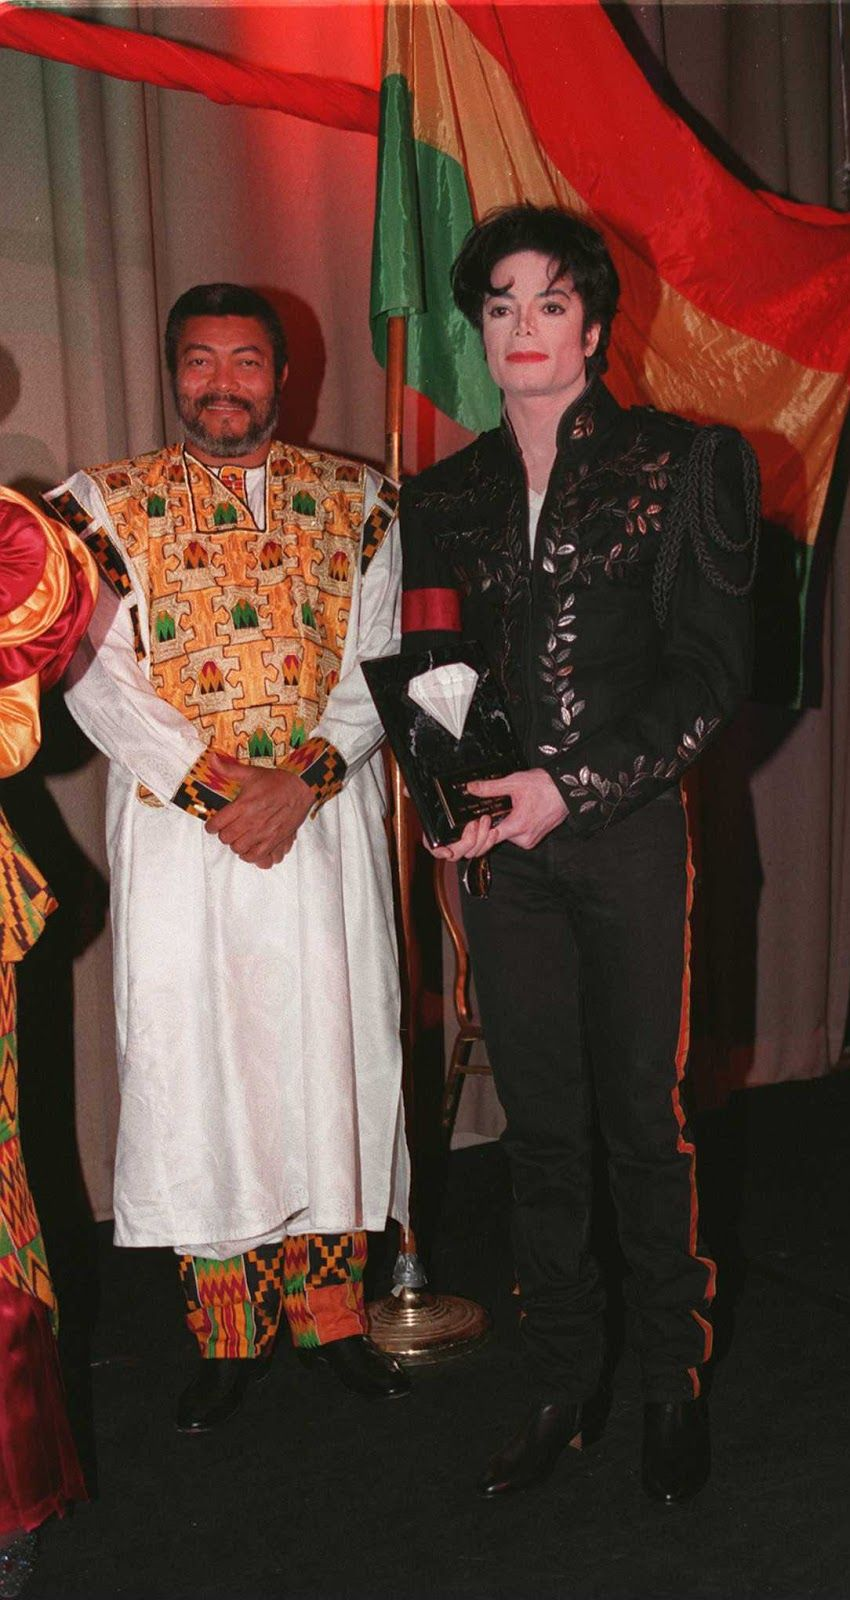 President of Ghana presents Michael Jackson with the